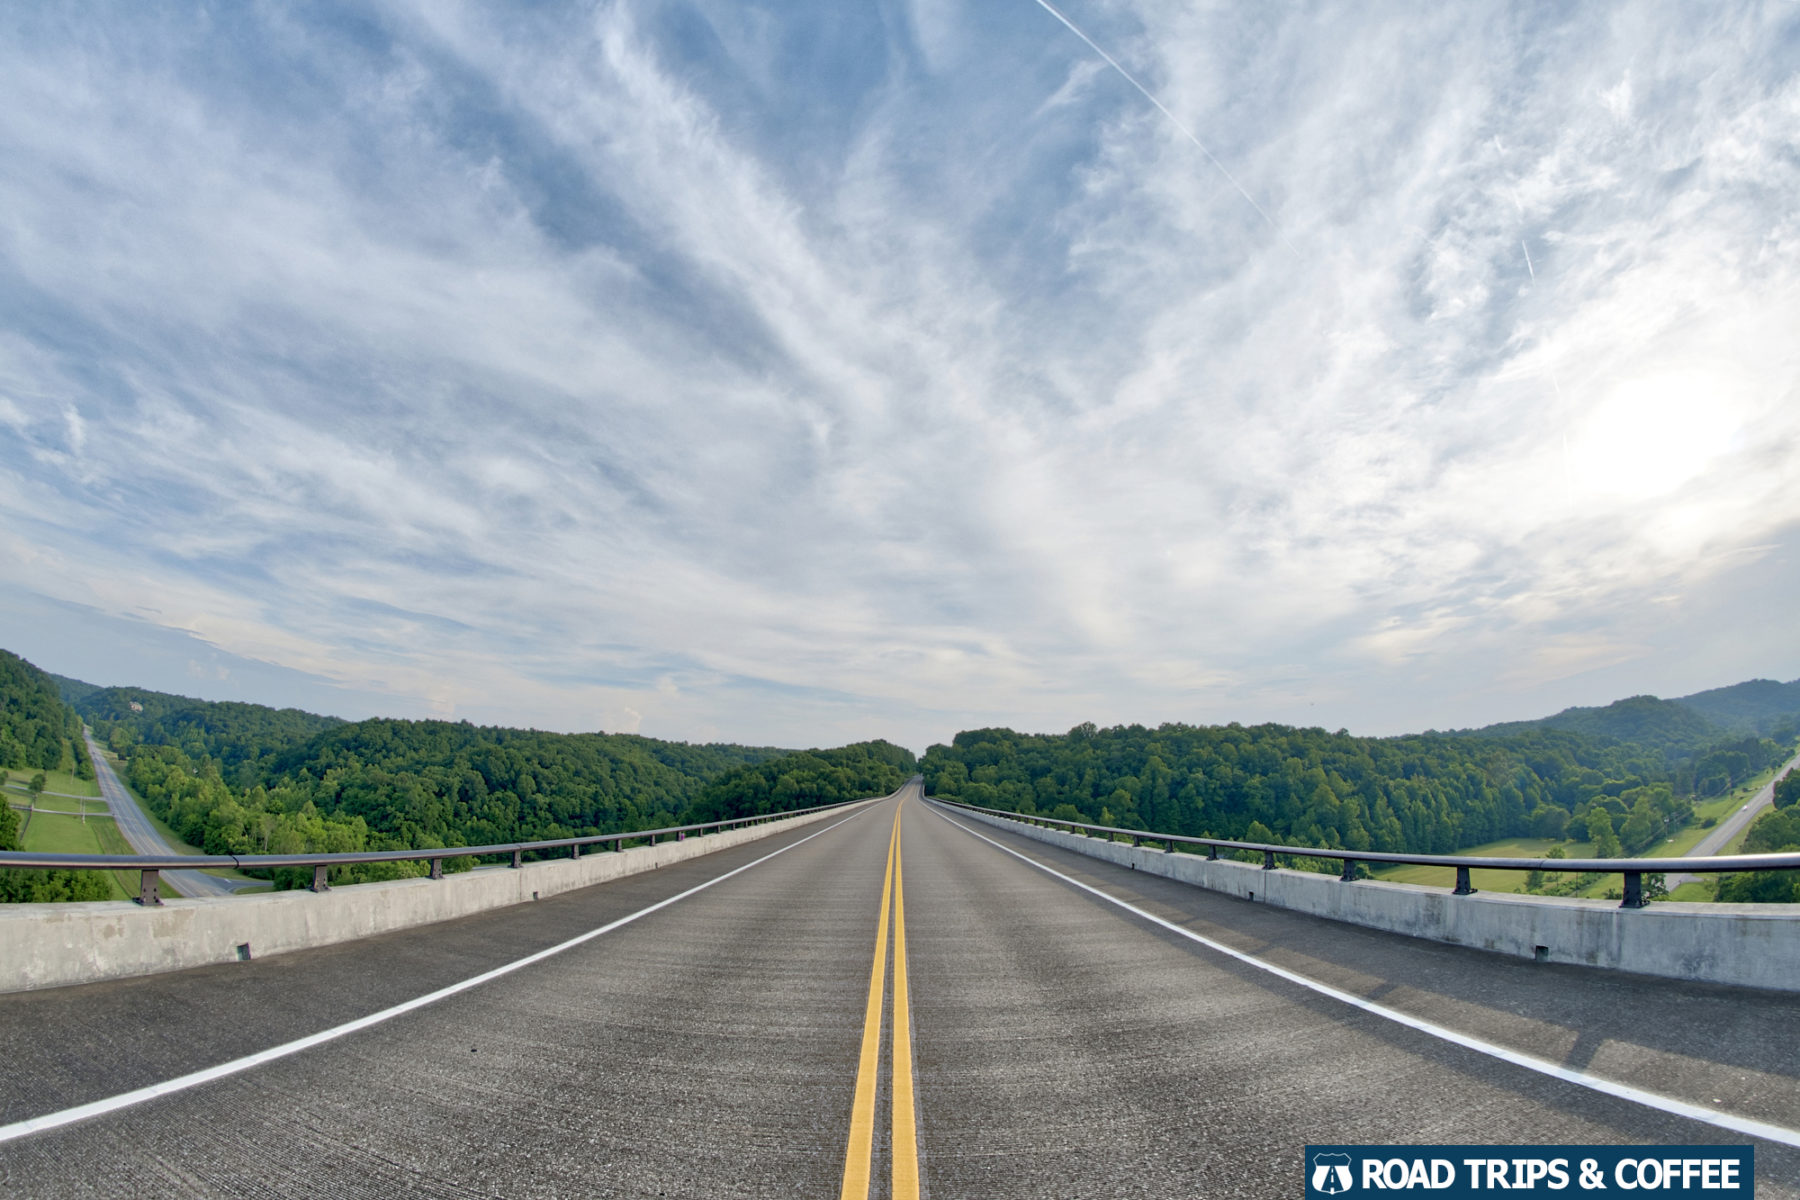 View from the middle of the Double Arch Bridge on the Natchez Trace Parkway in Nashville, Tennessee